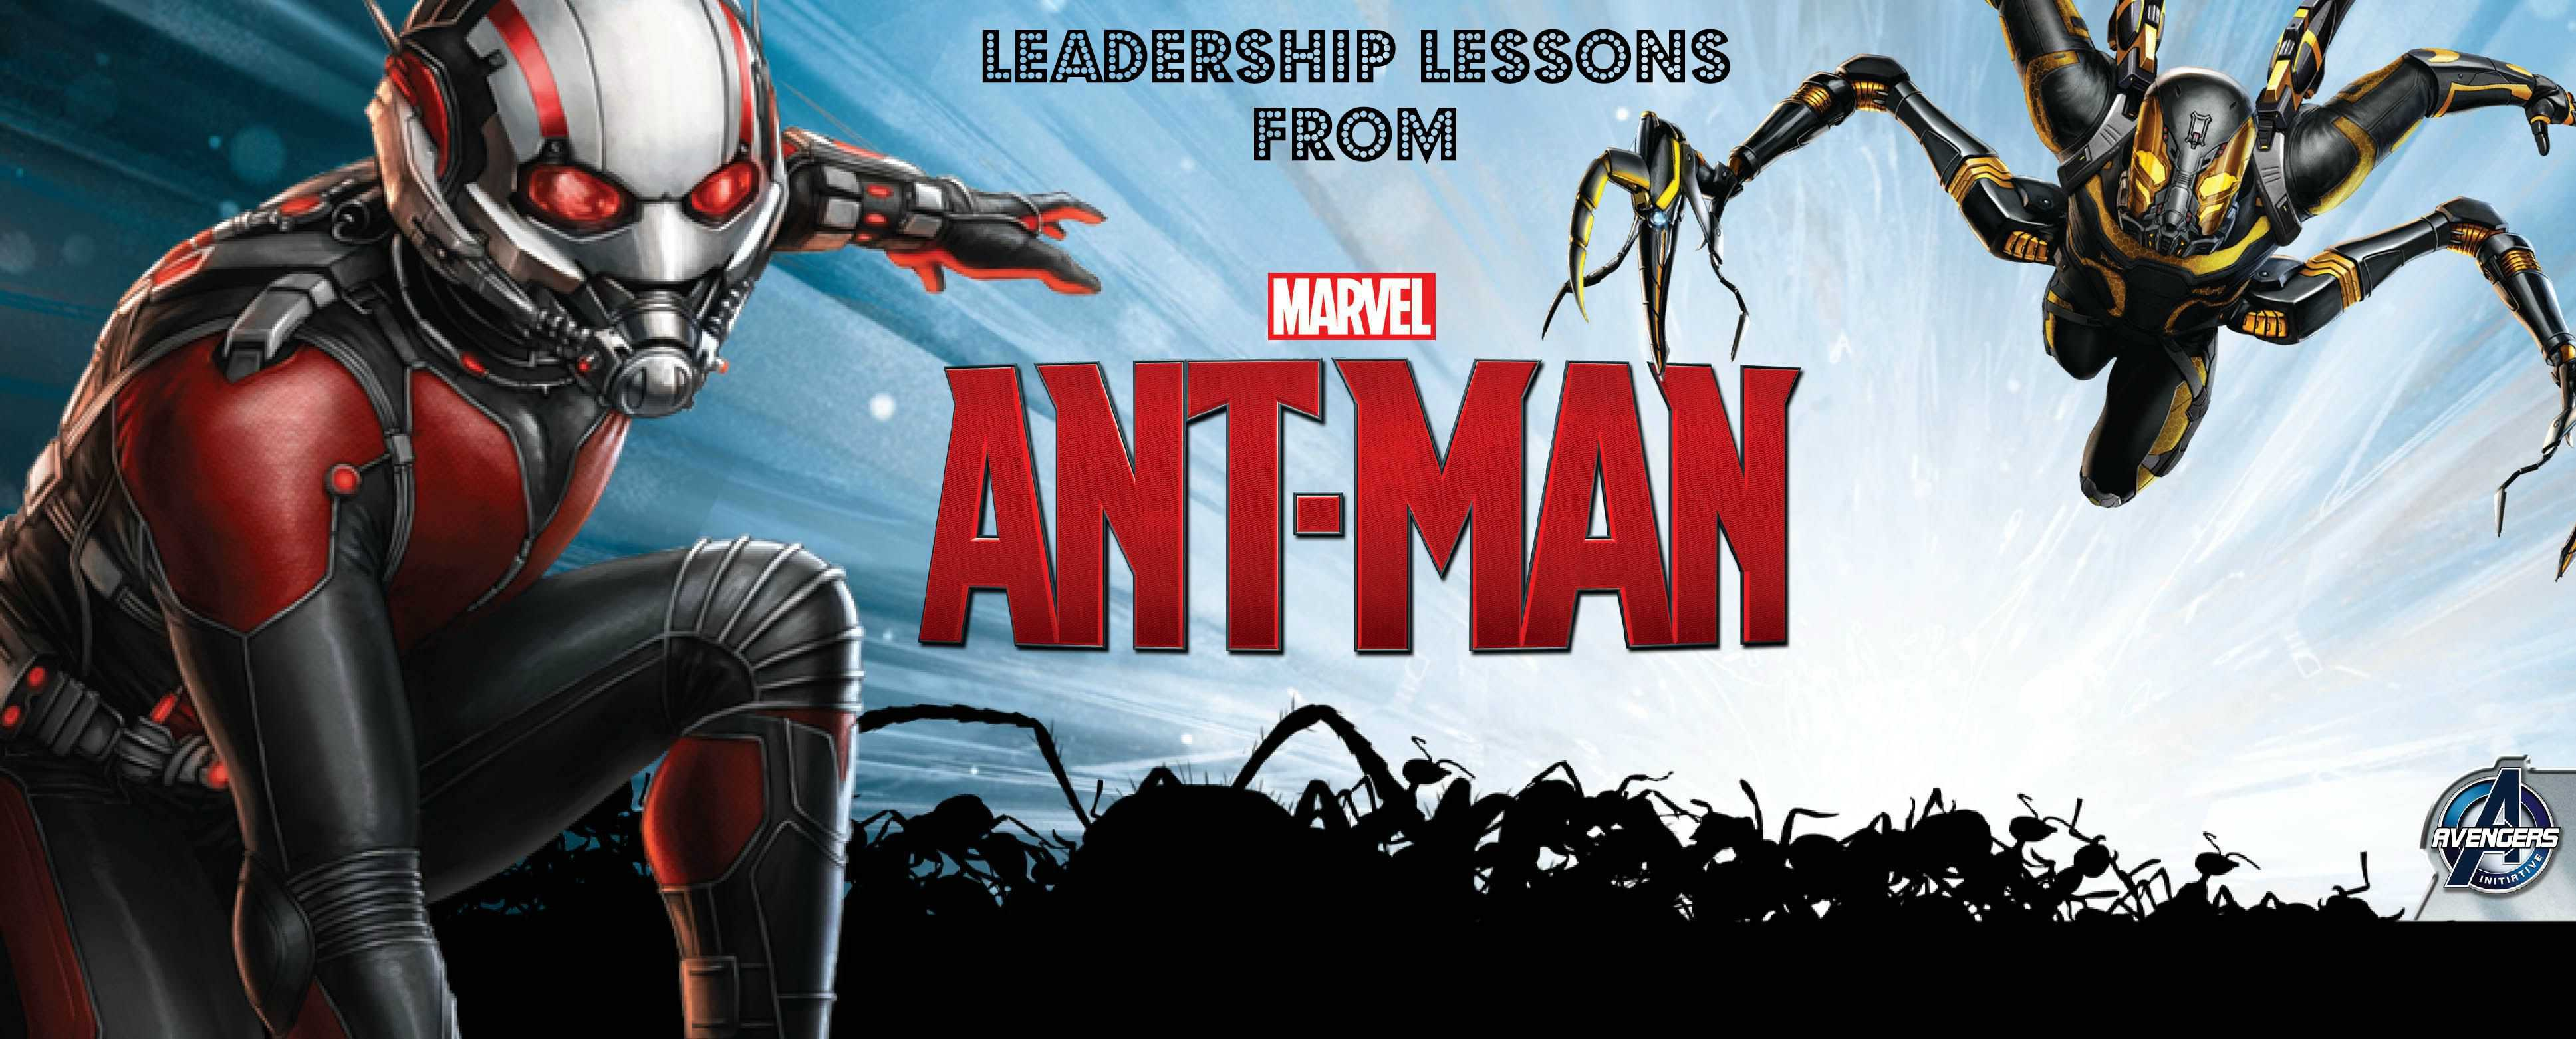 Marvel's Ant-Man leadership lessons